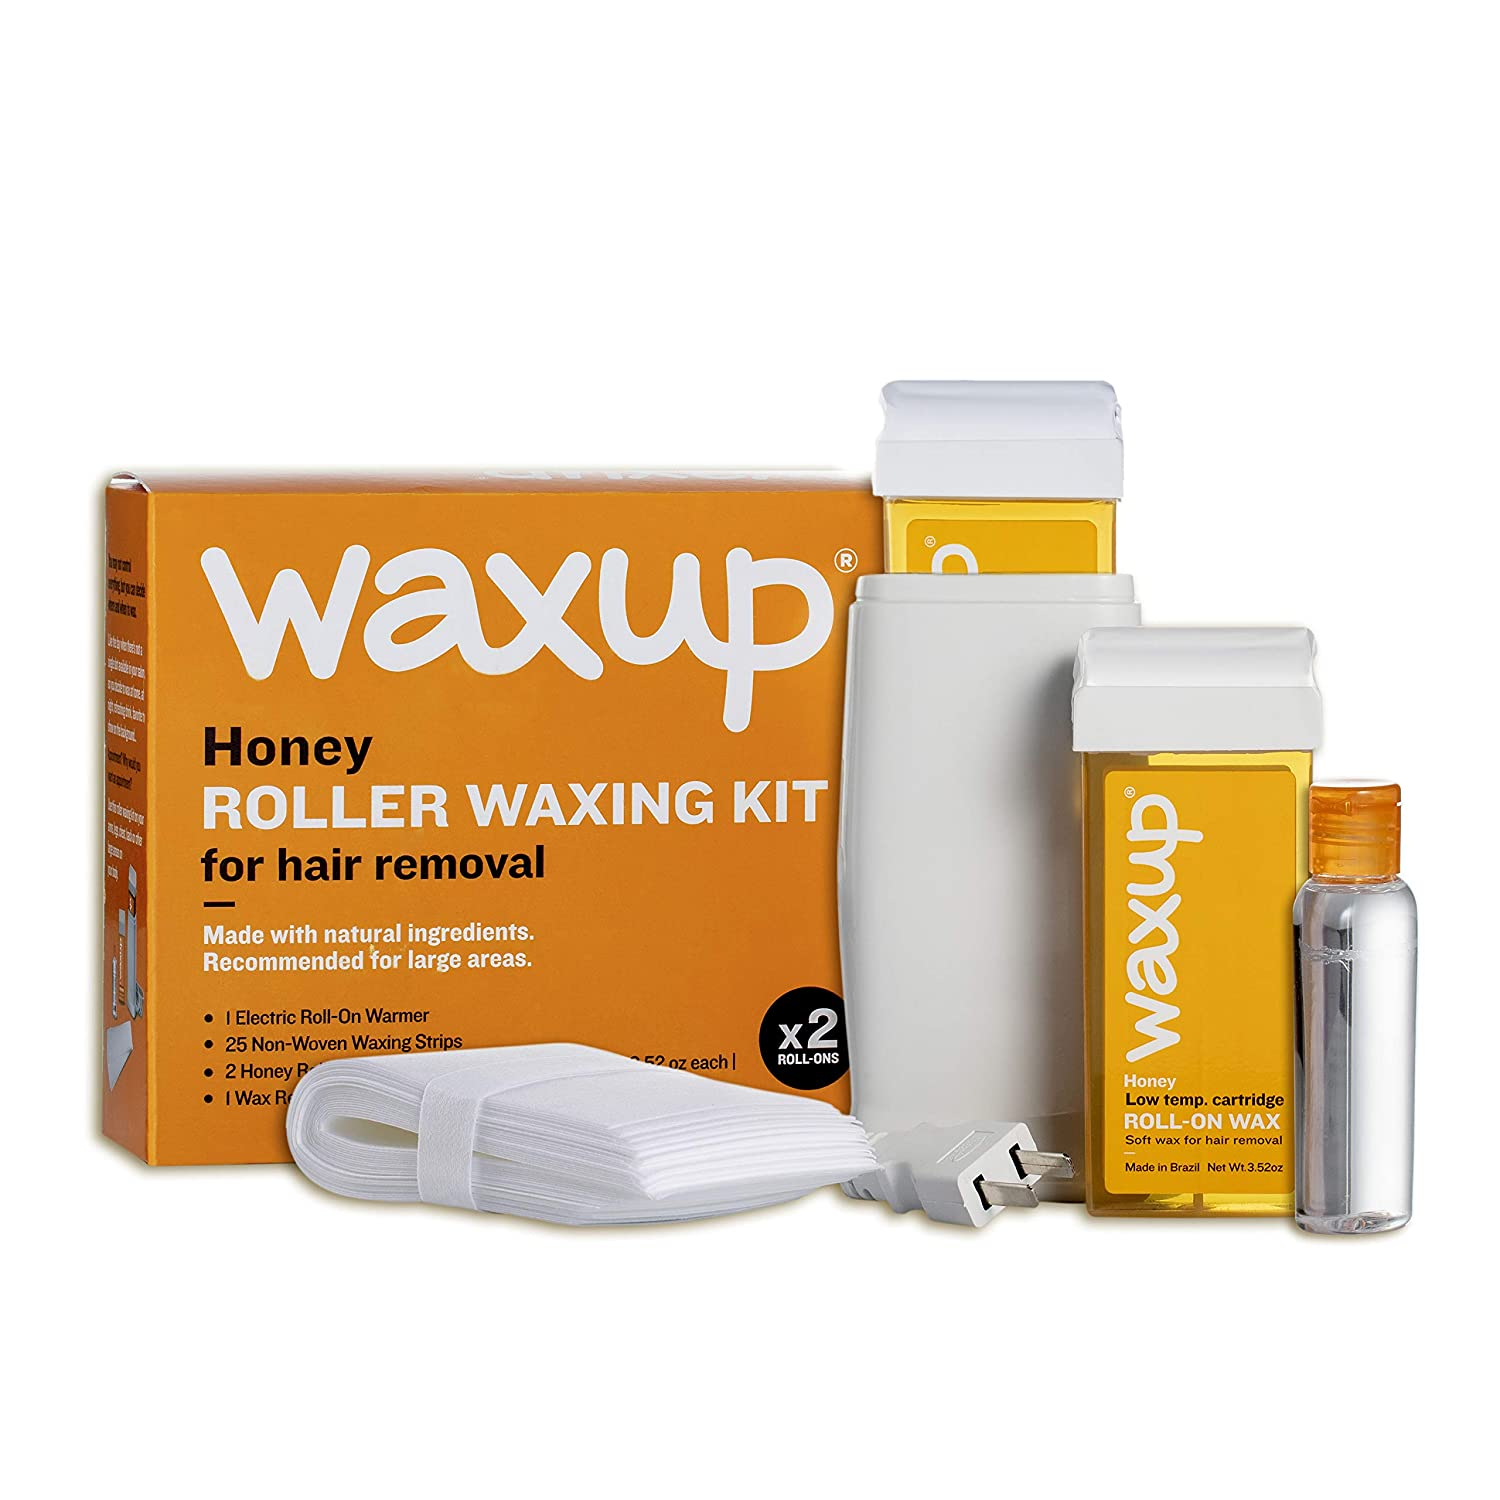 waxup Roller Waxing Kit, Home Depilatory Soft Wax Warmer (Heater), 25 Non Woven Wax Strips for Hair Removal, Oil Wax Remover, 2 Honey Roll On Wax Cartridge Refill, Men and Women, Sensitive Skin.